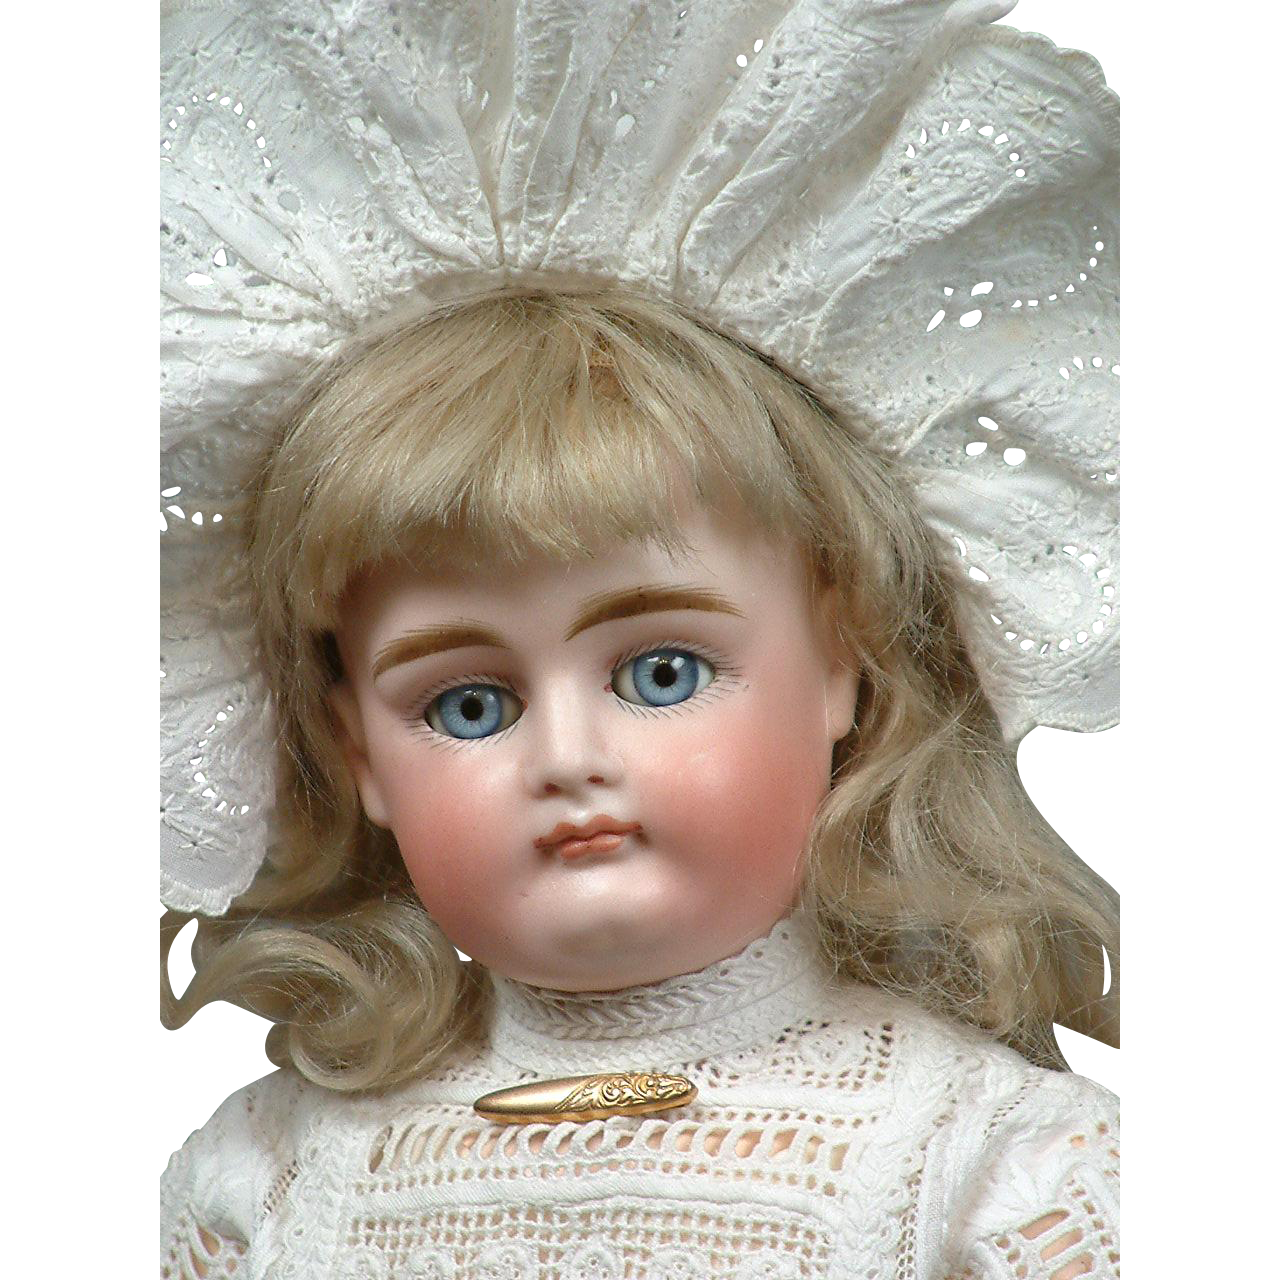 "13""  Extreme Pouty-Faced XII Kestner All Original Bebe With Early Kestner Body --Fabulous Condition & Presentation! WoW!"